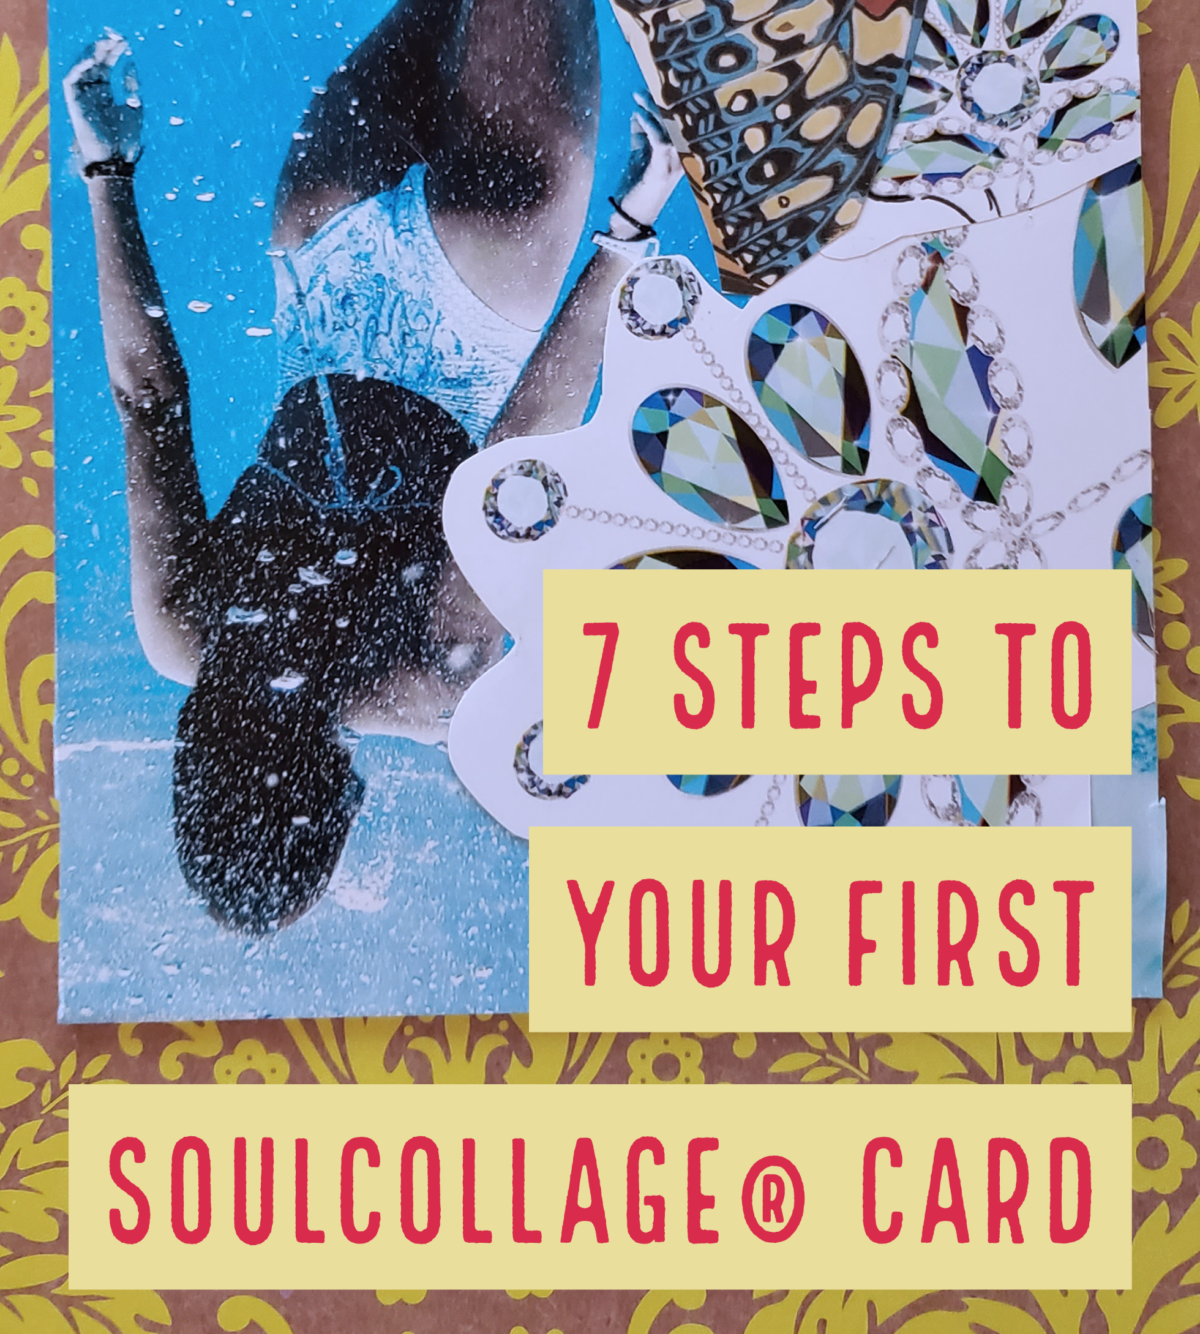 Just Dive In! Your First SoulCollage ® Card in 7 Easy Steps